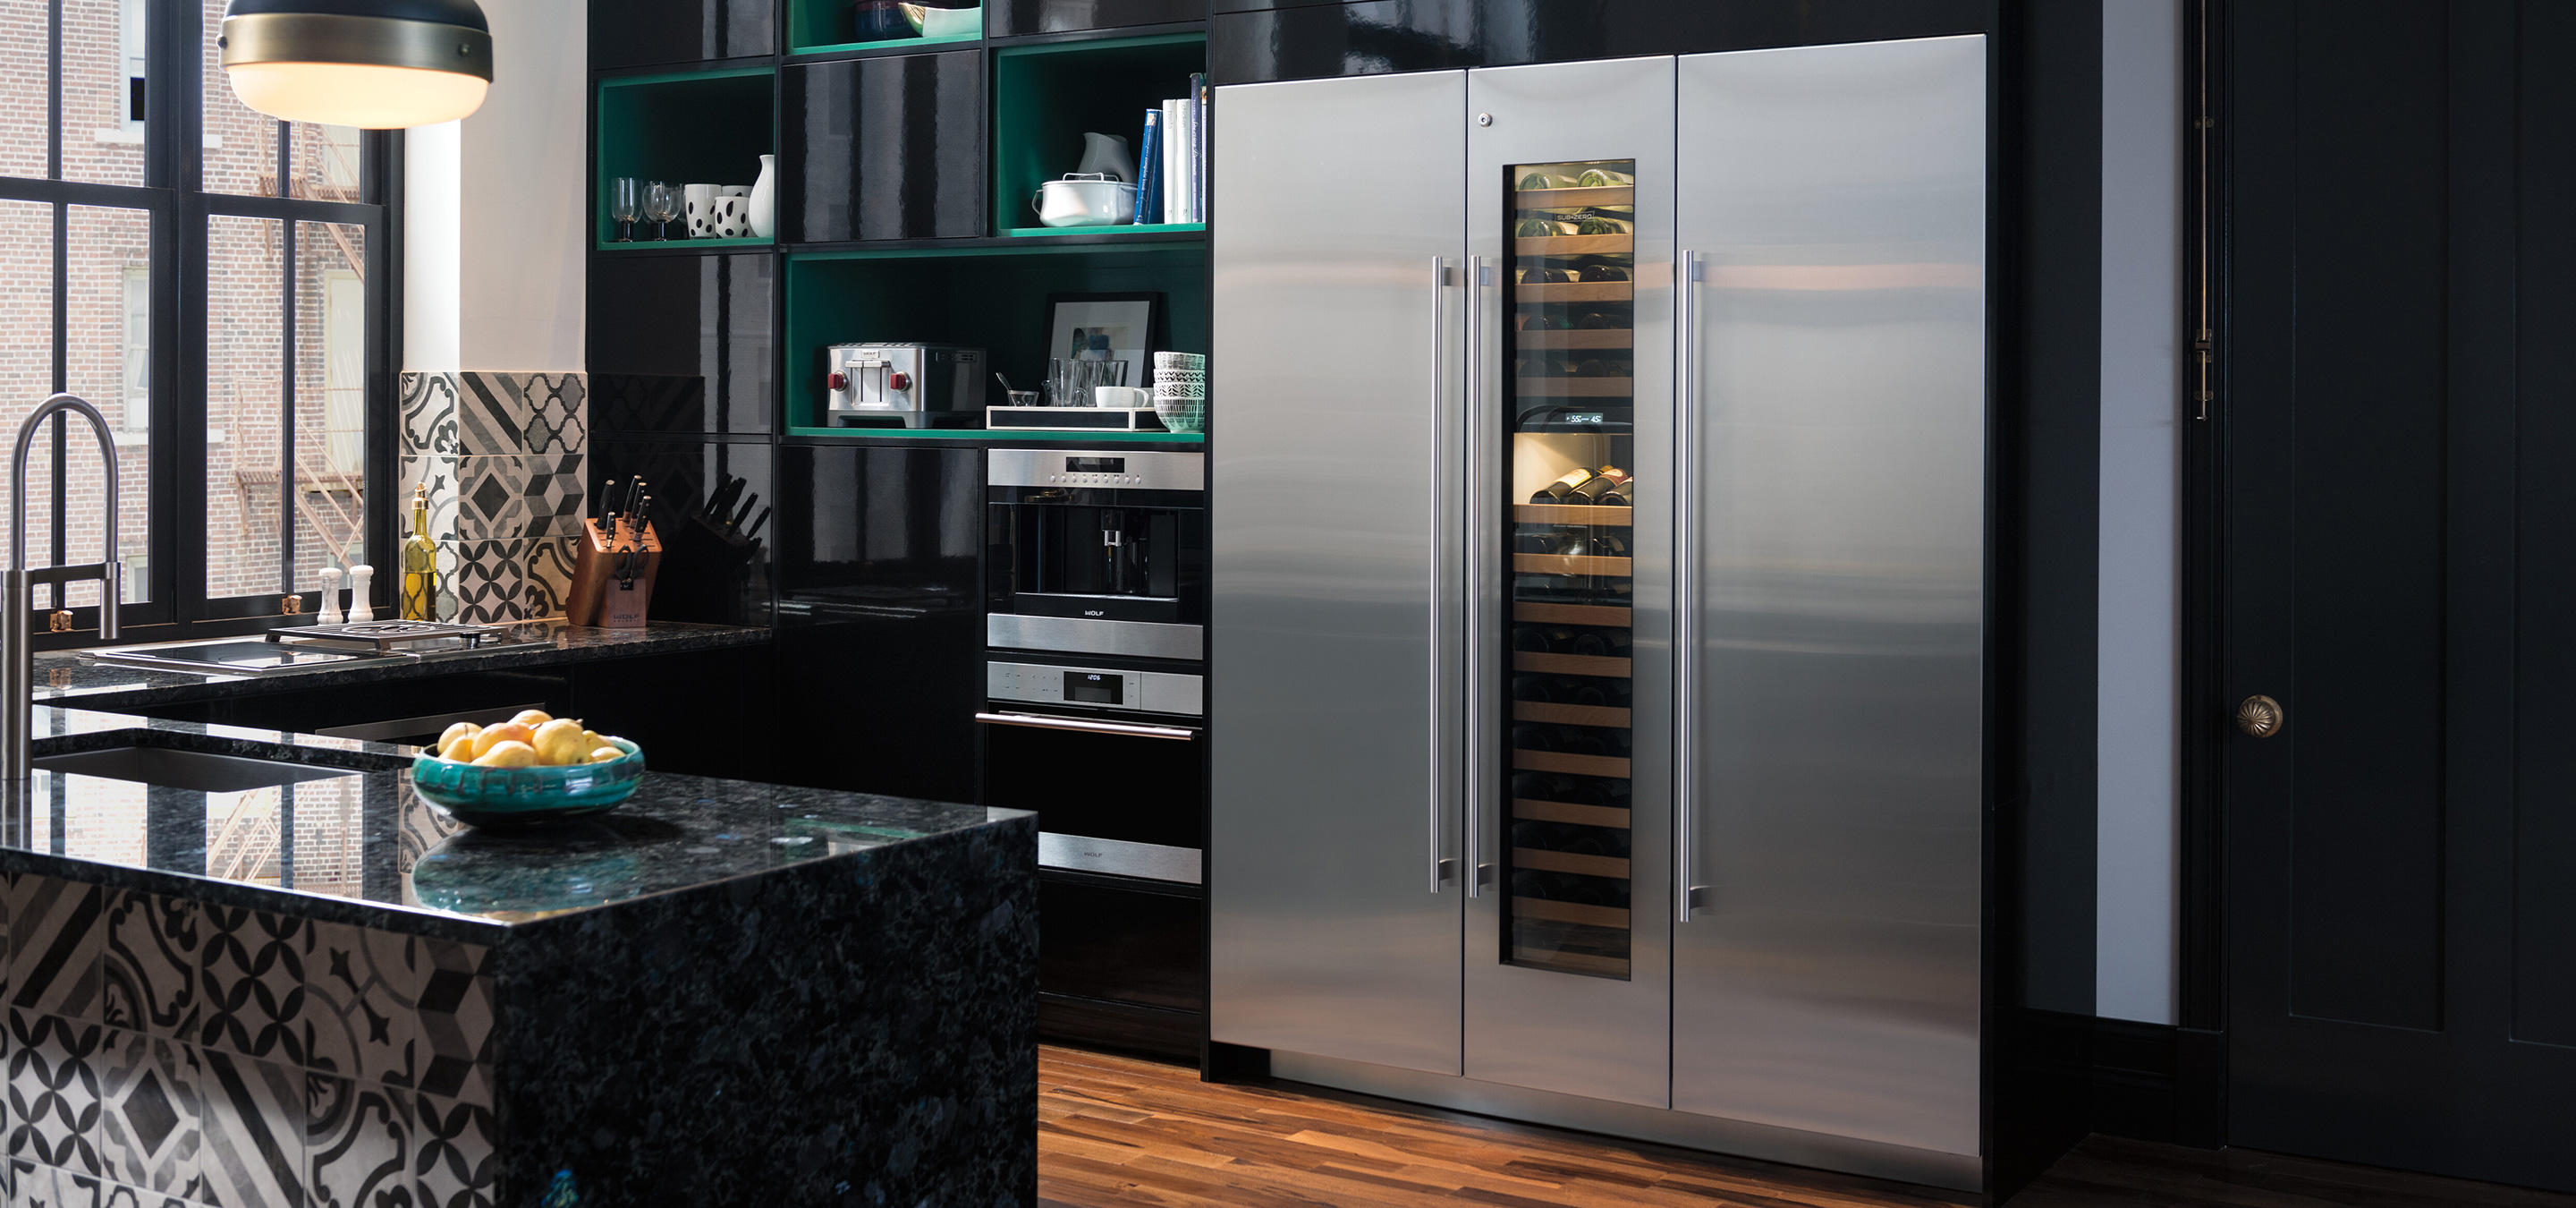 Sub-Zero Built-in fridge, freezer and wine rack